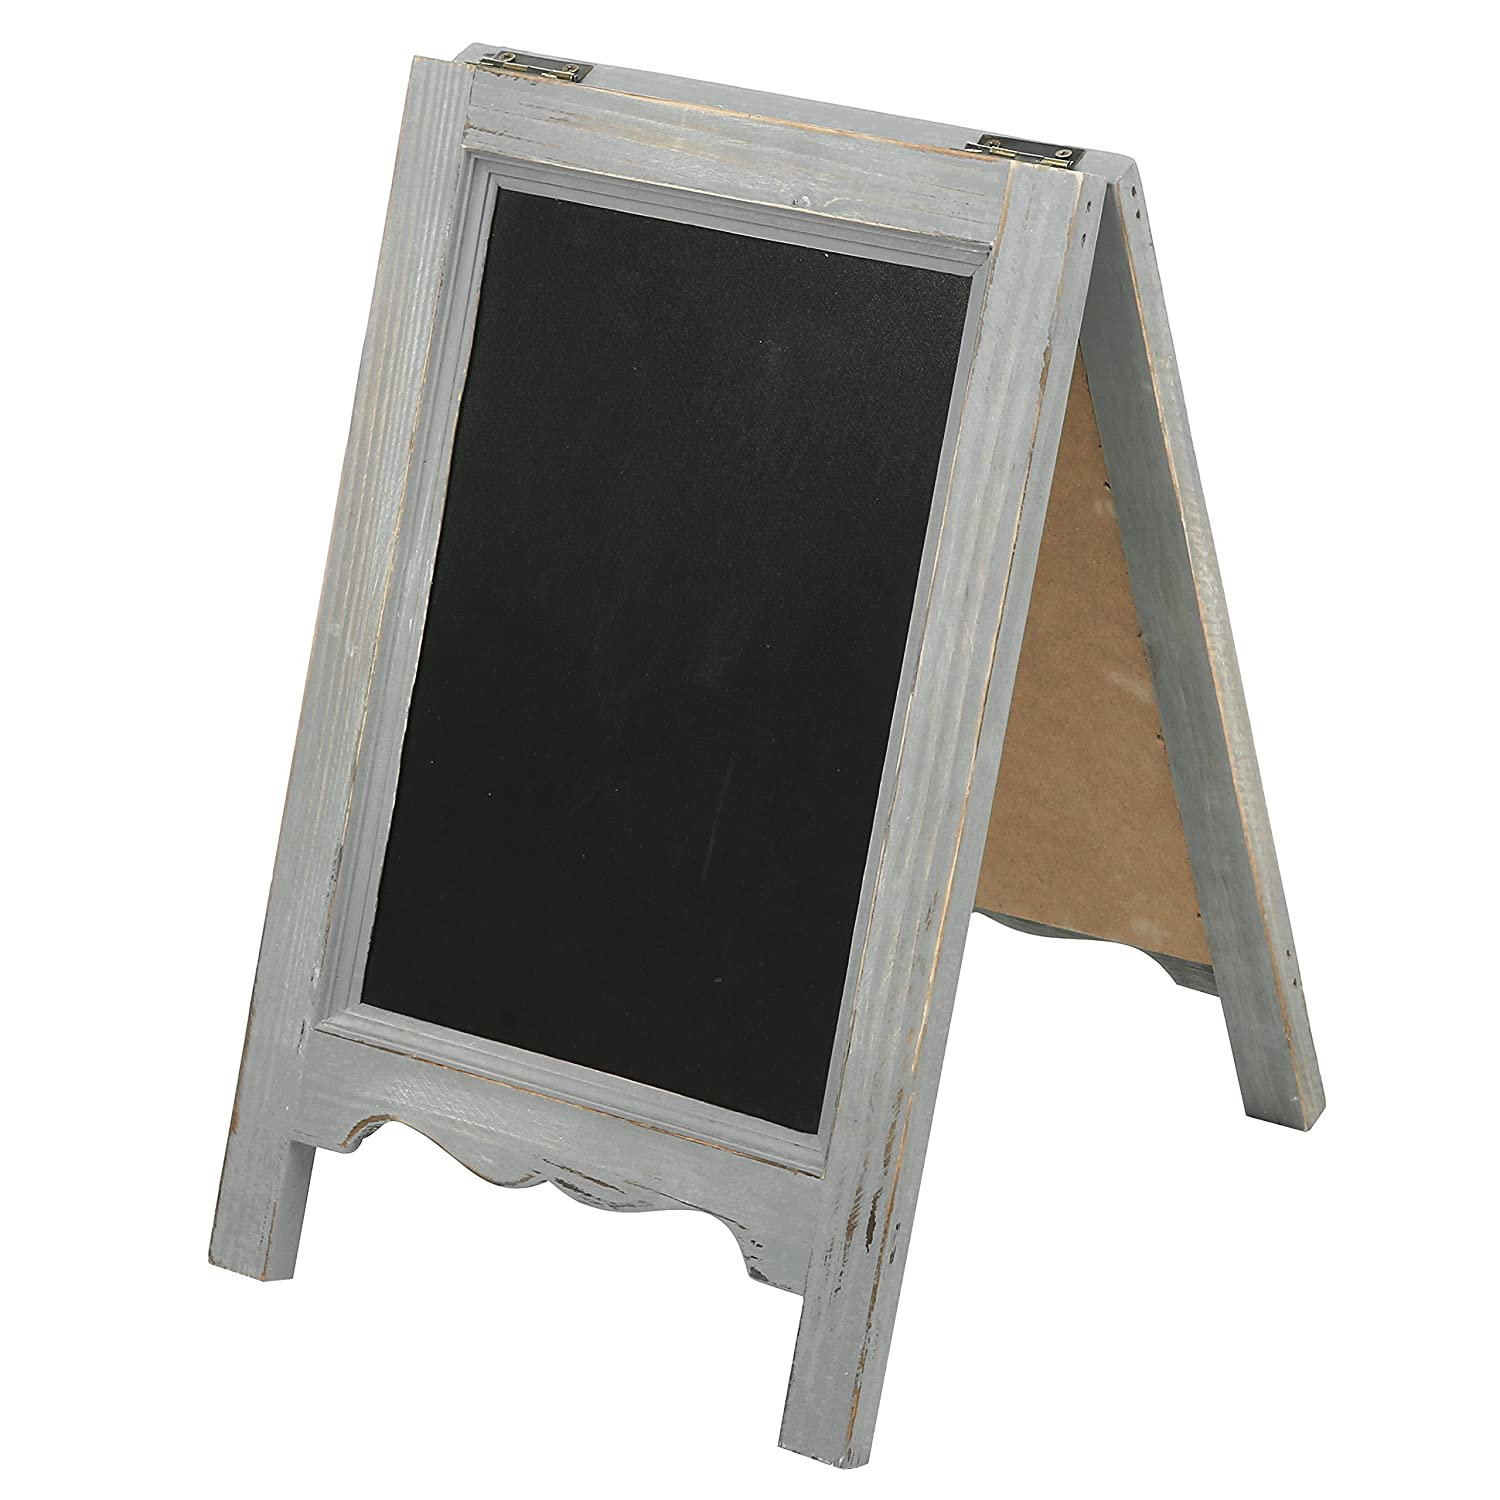 15 inch Mini Tabletop Wooden A-Frame Double-Sided Slate Chalkboard Sign Easel, Gray MyGift SPOMHNK4377